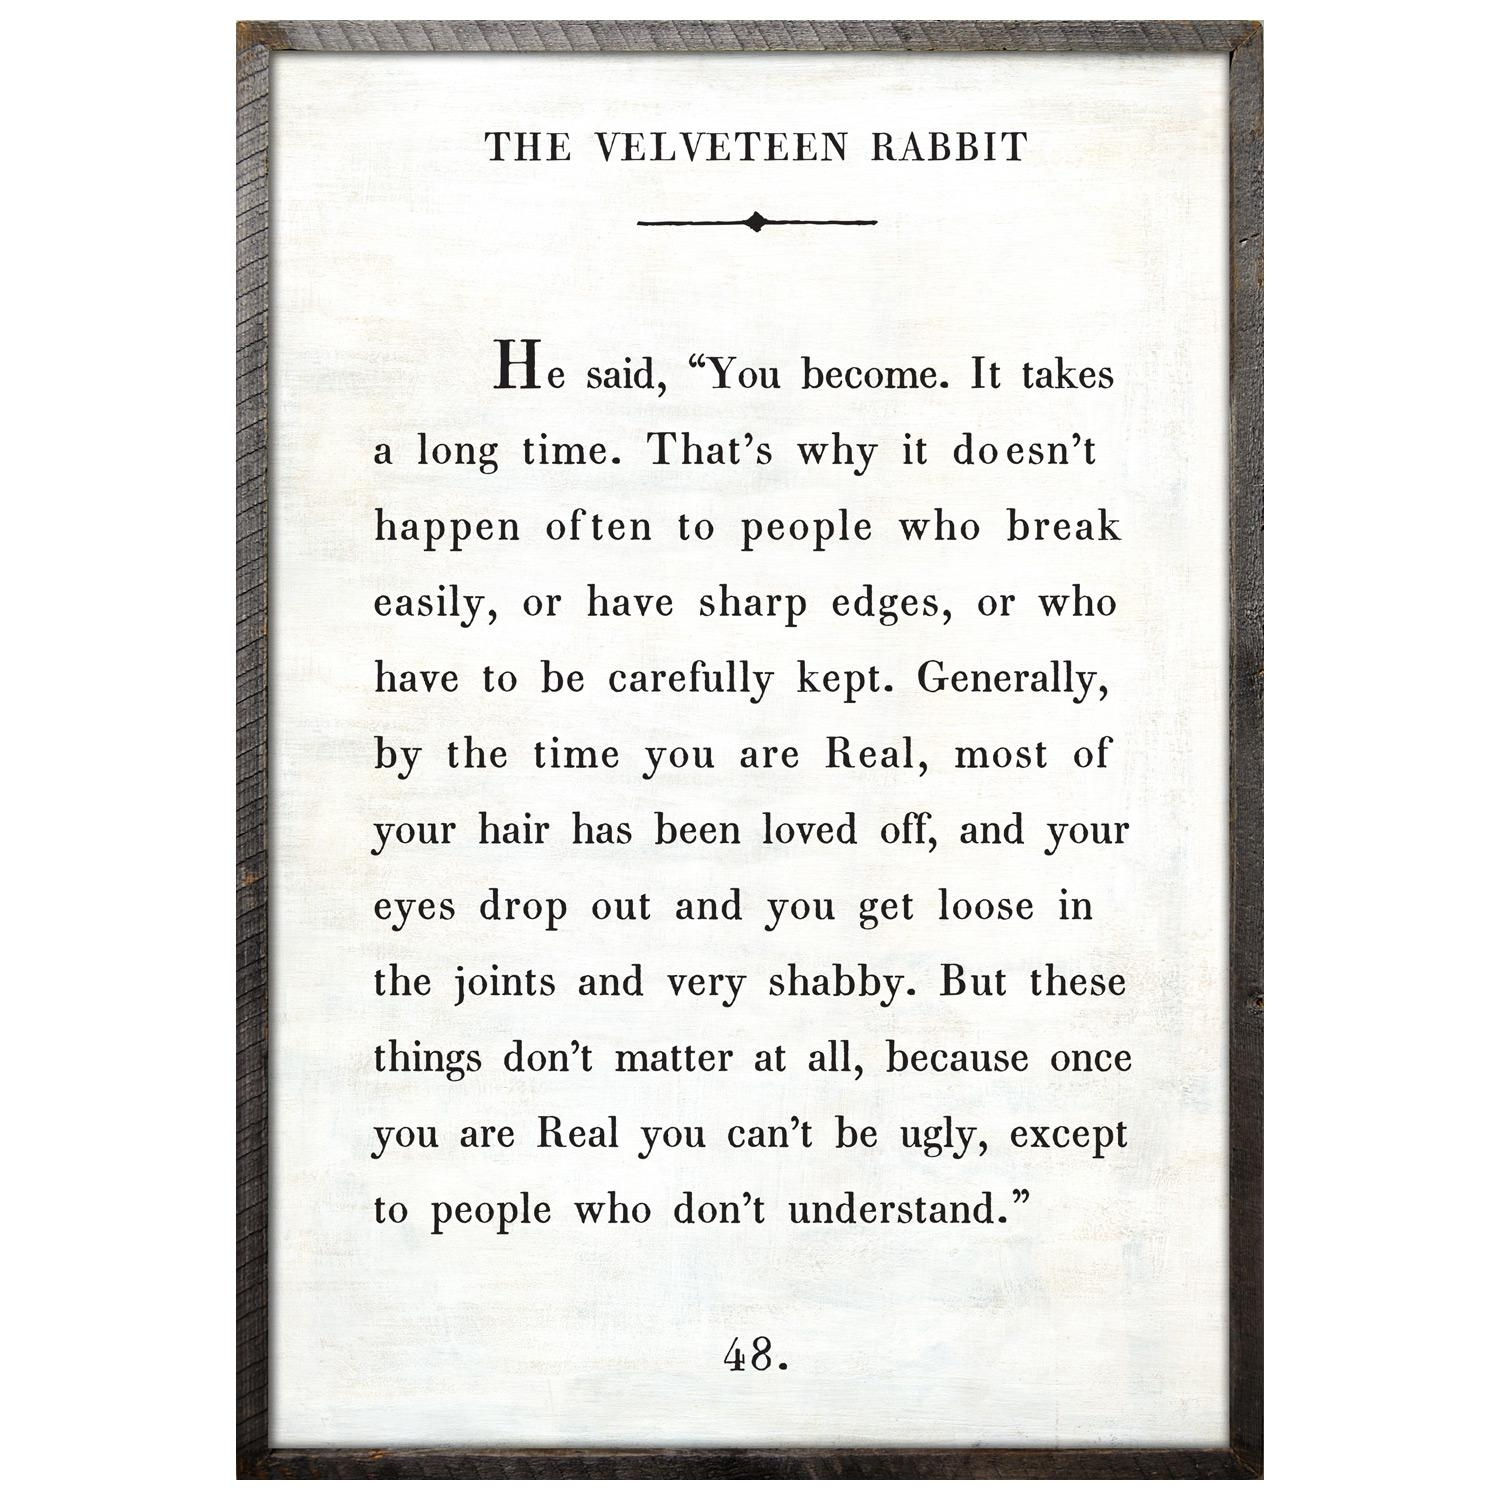 Sugarboo Designs Velveteen Rabbit Art Print Pertaining To Velveteen Rabbit Wall Art (View 16 of 20)